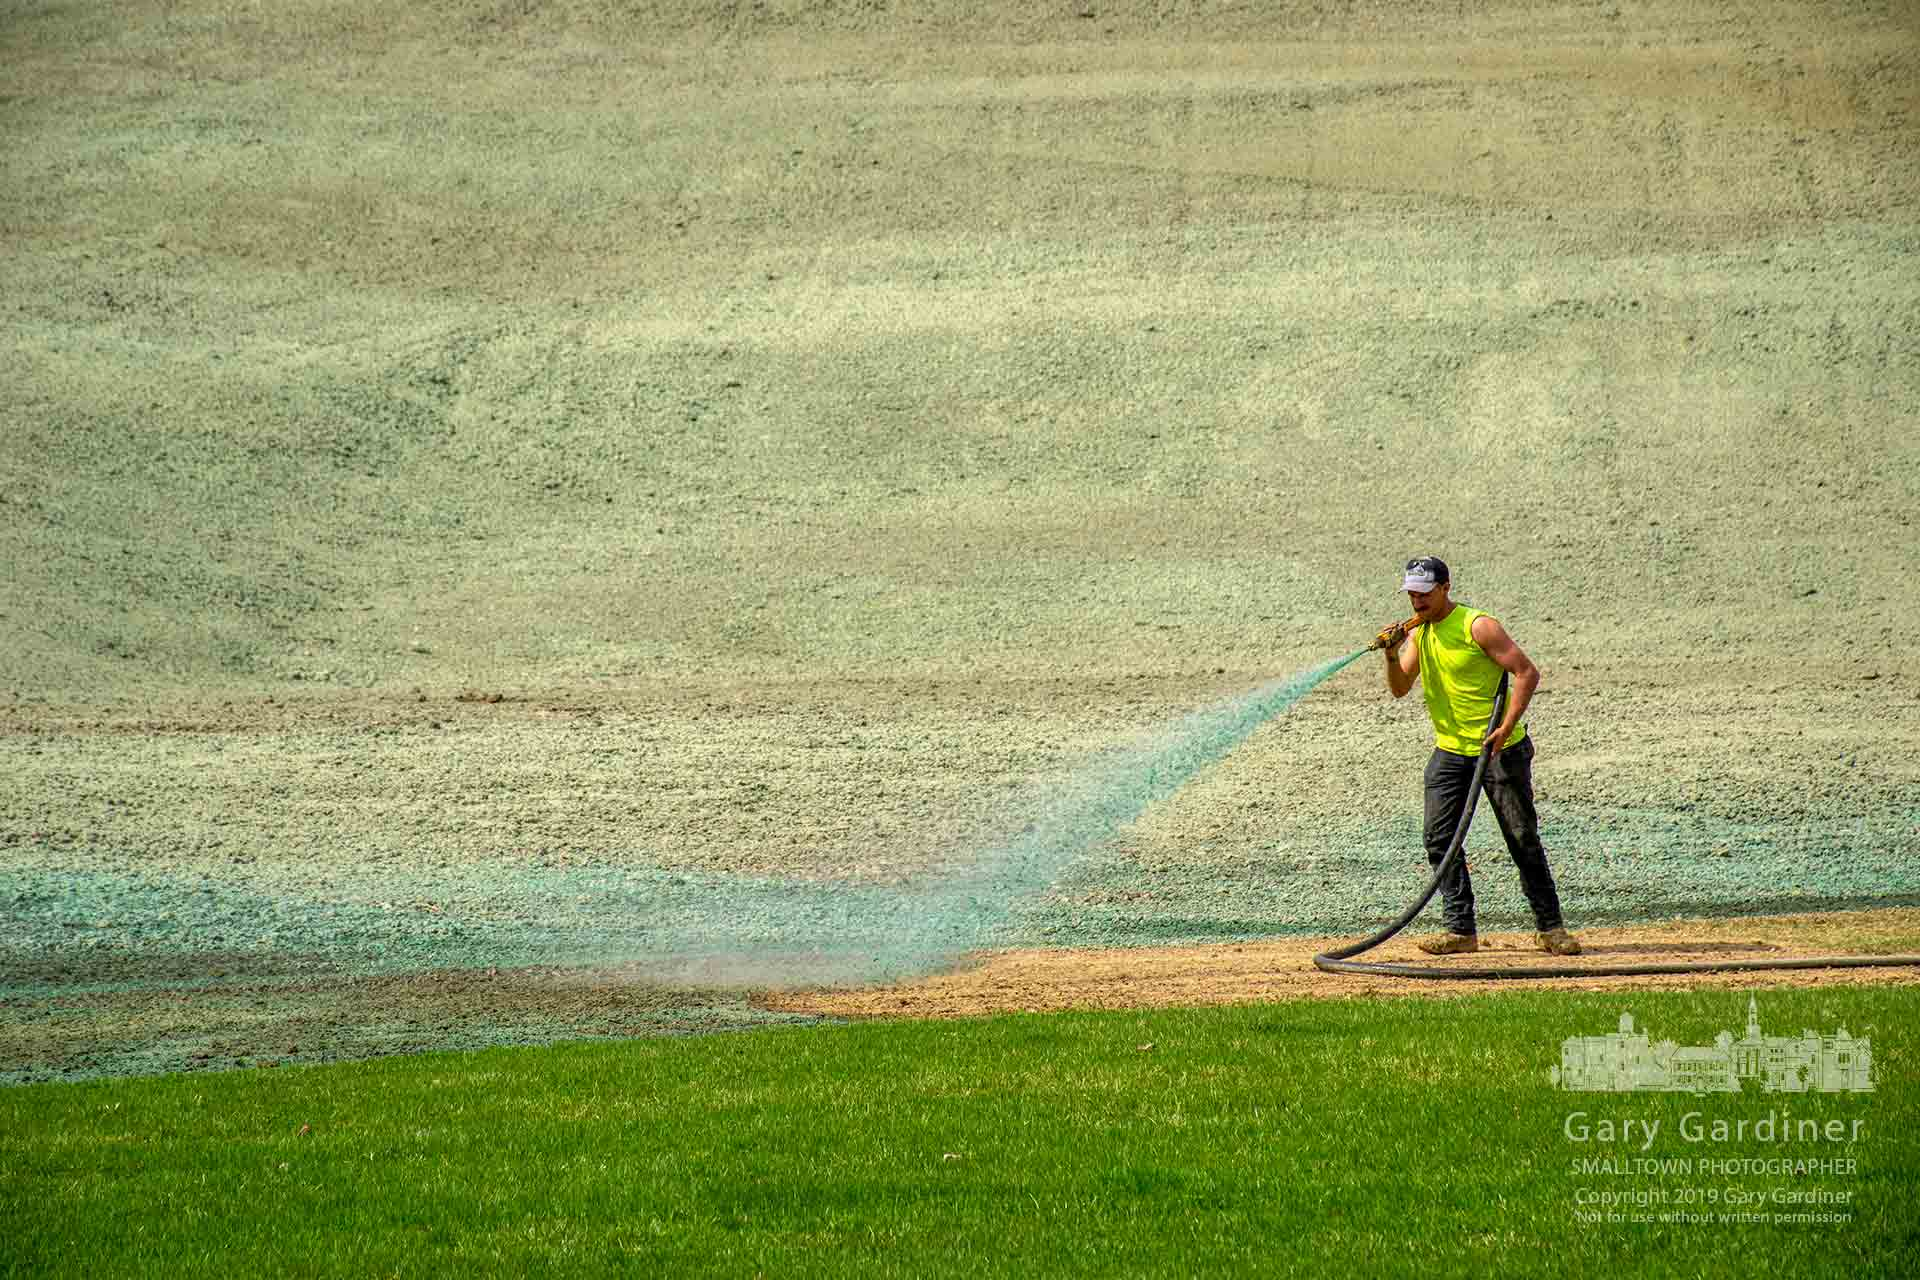 A landscaper sprays hydroseed at the base of the newly built and seeded sledding hill at Alum Creek Park South near the skate park, BMX trail, and outdoor hockey rink. My Final Photo for April 11, 2019.